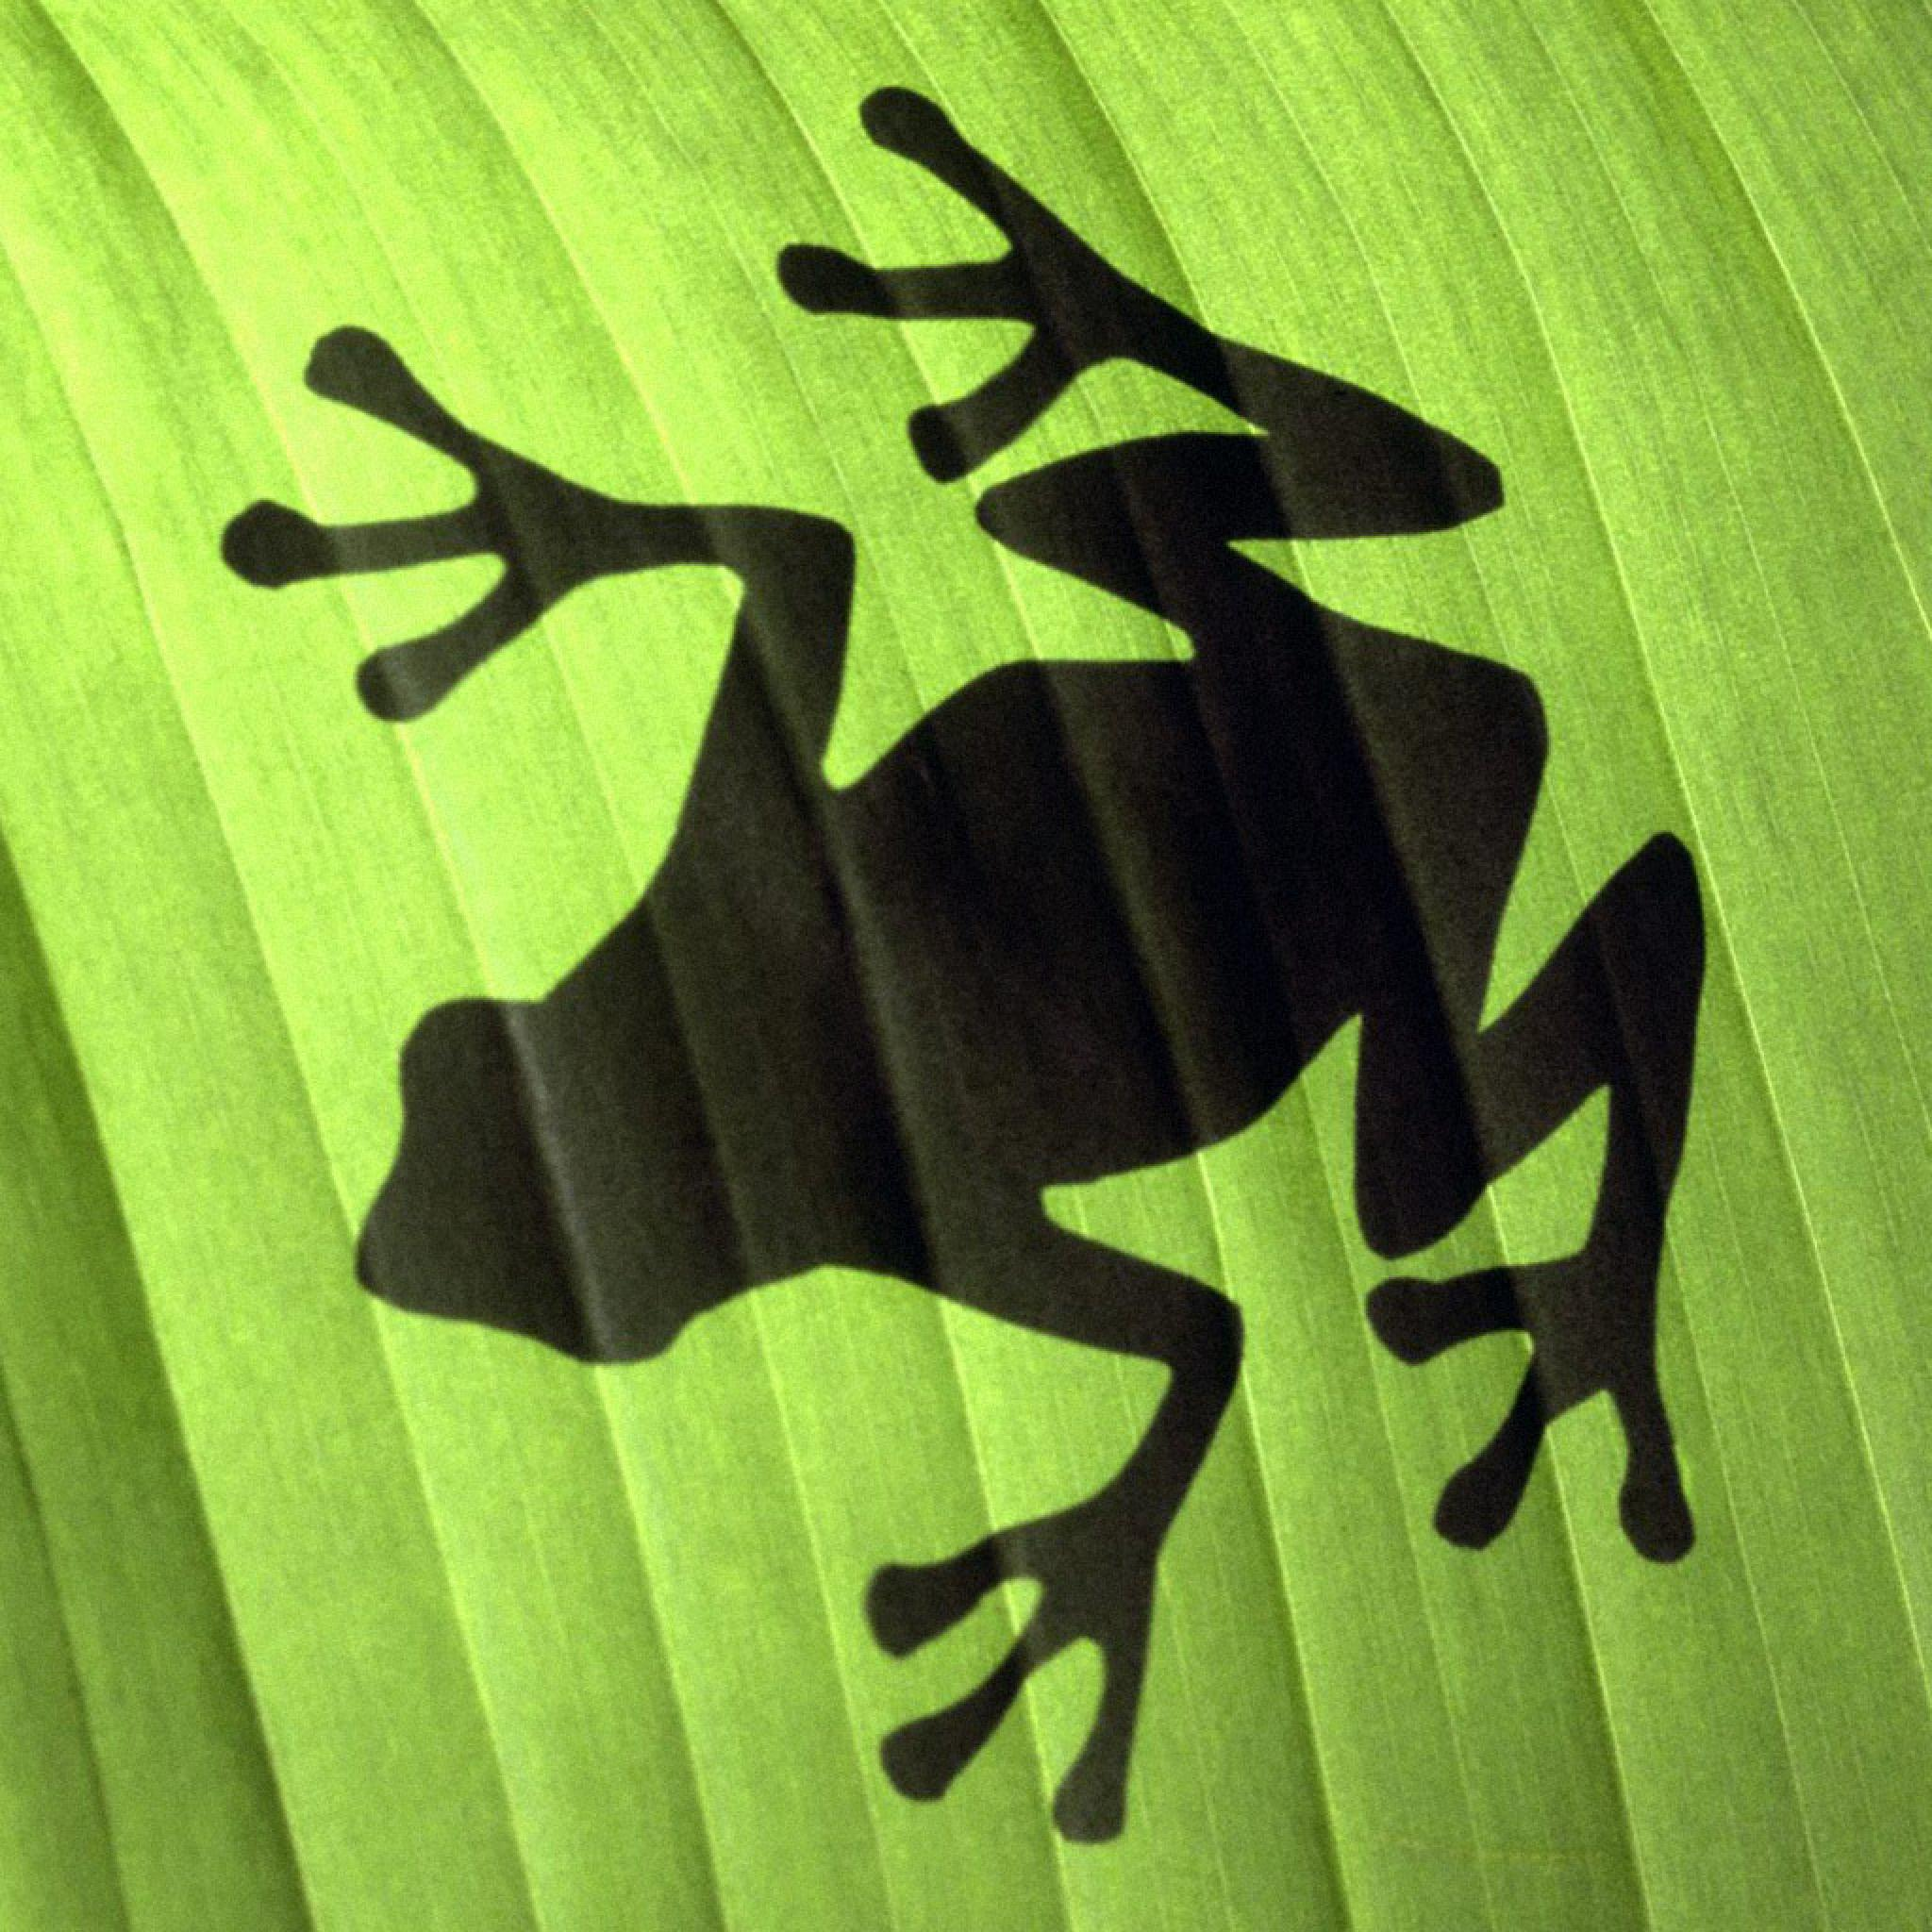 Wallpaper Iphone 3d Touch Animals Tree Frog Shadow Ipad Iphone Hd Wallpaper Free